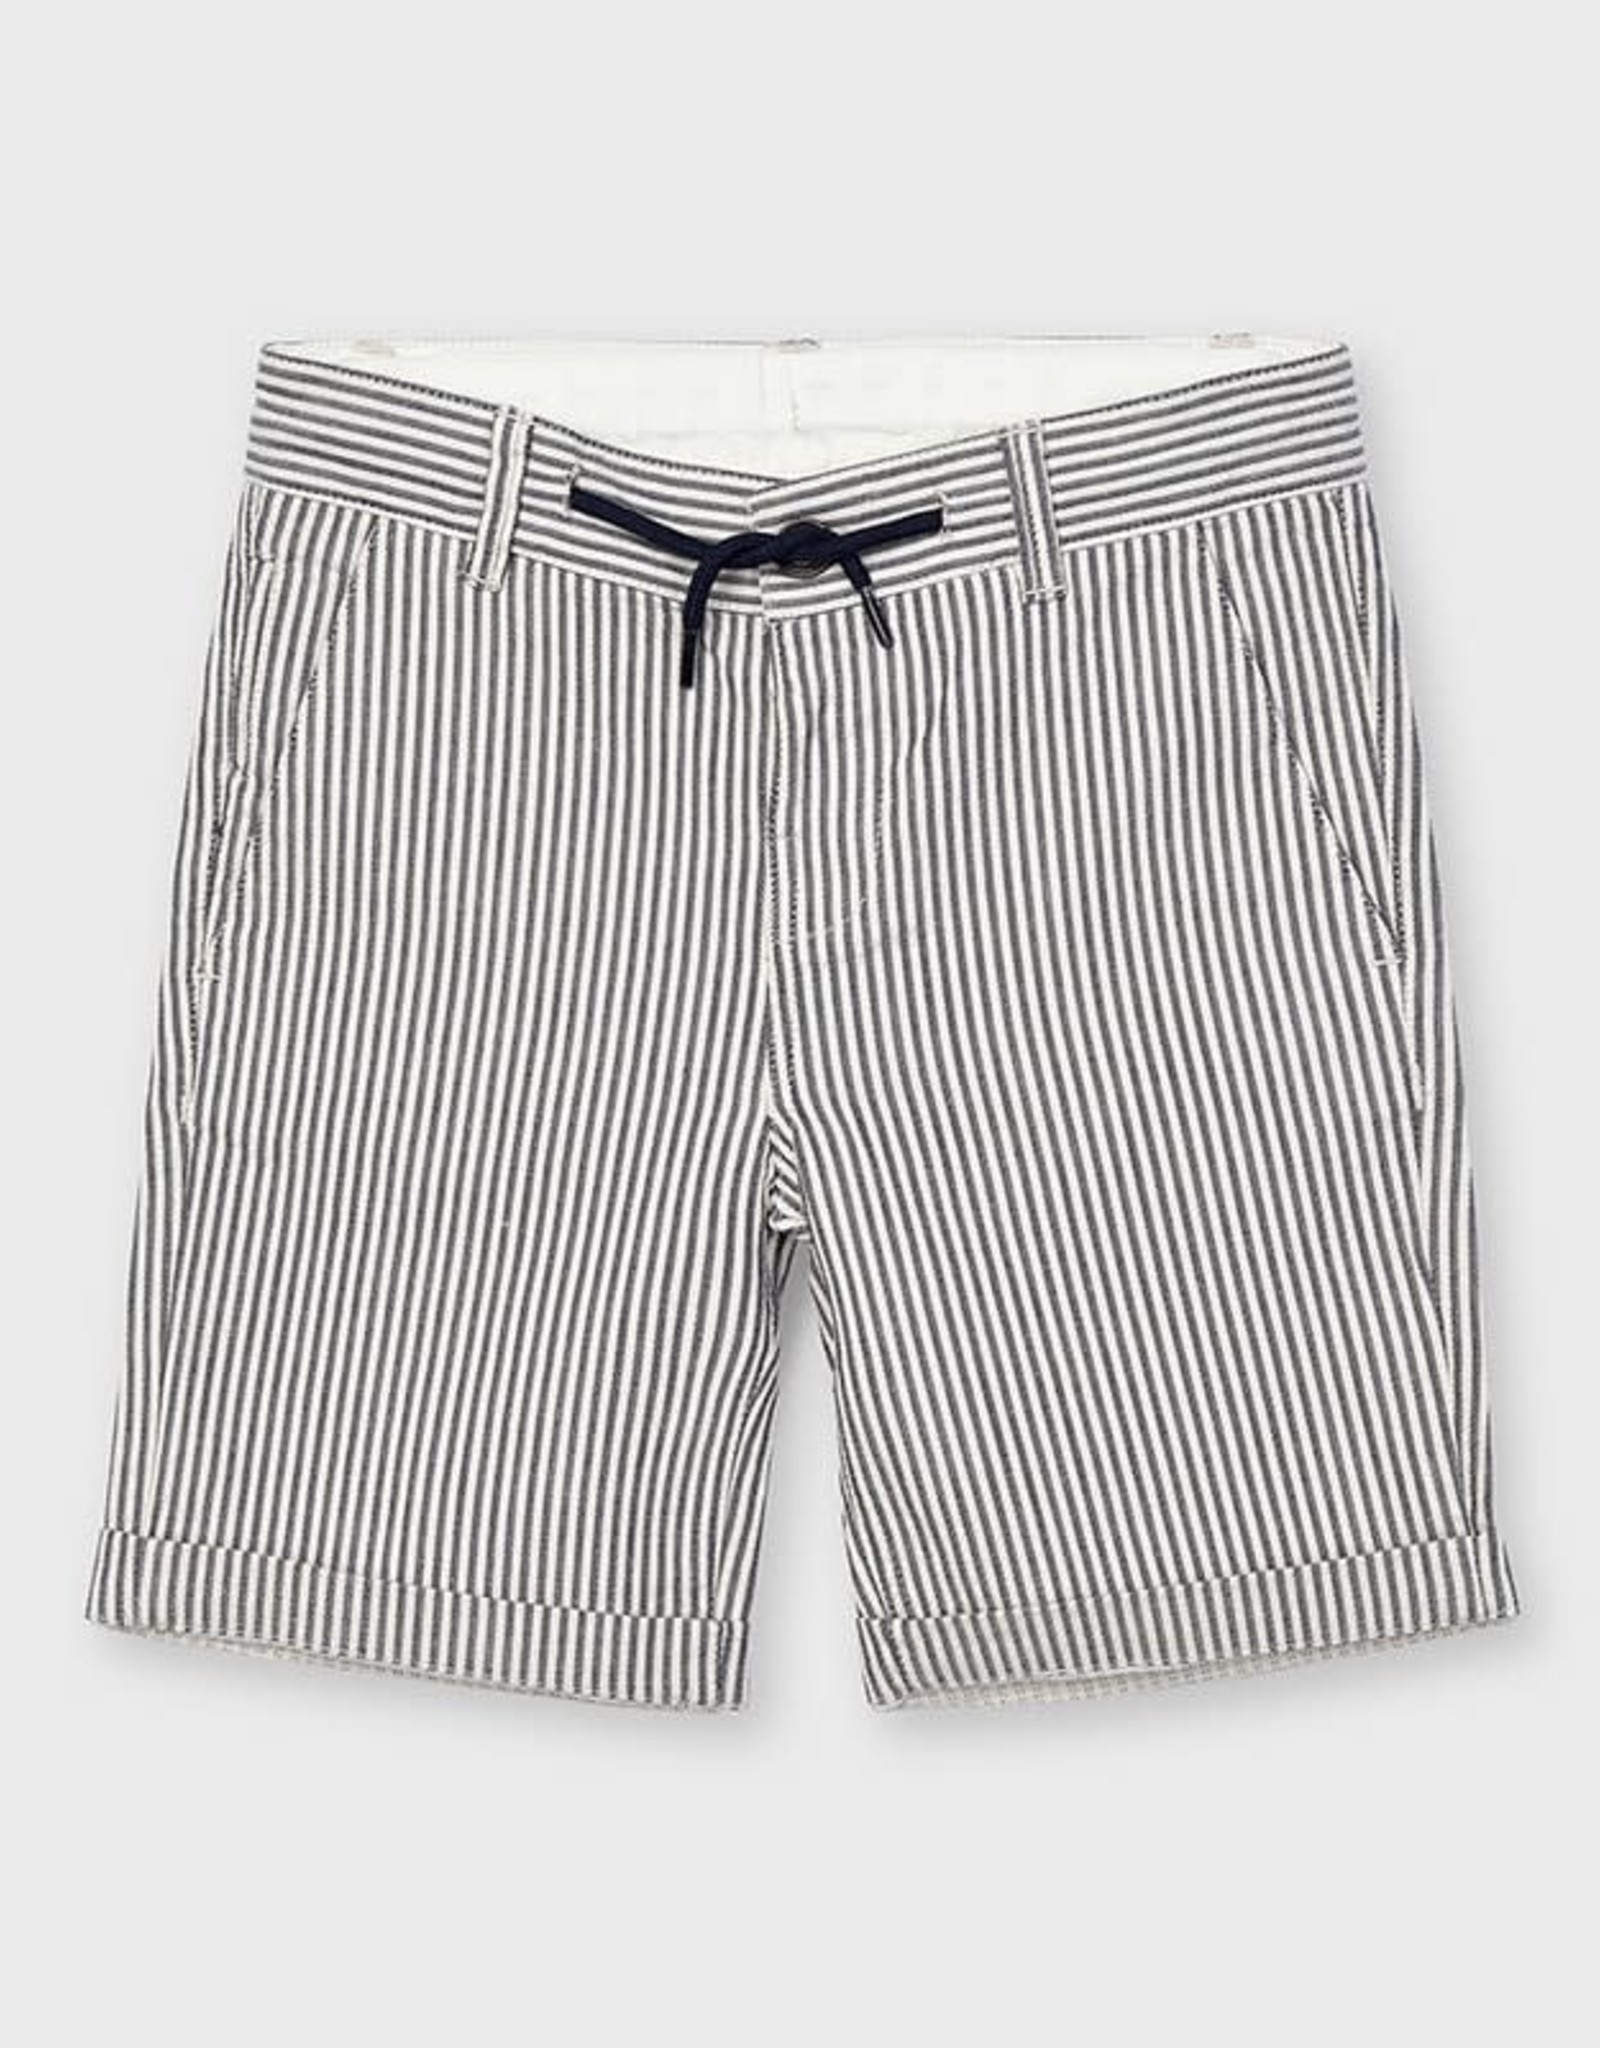 Mayoral Short Navy Oxford stripe